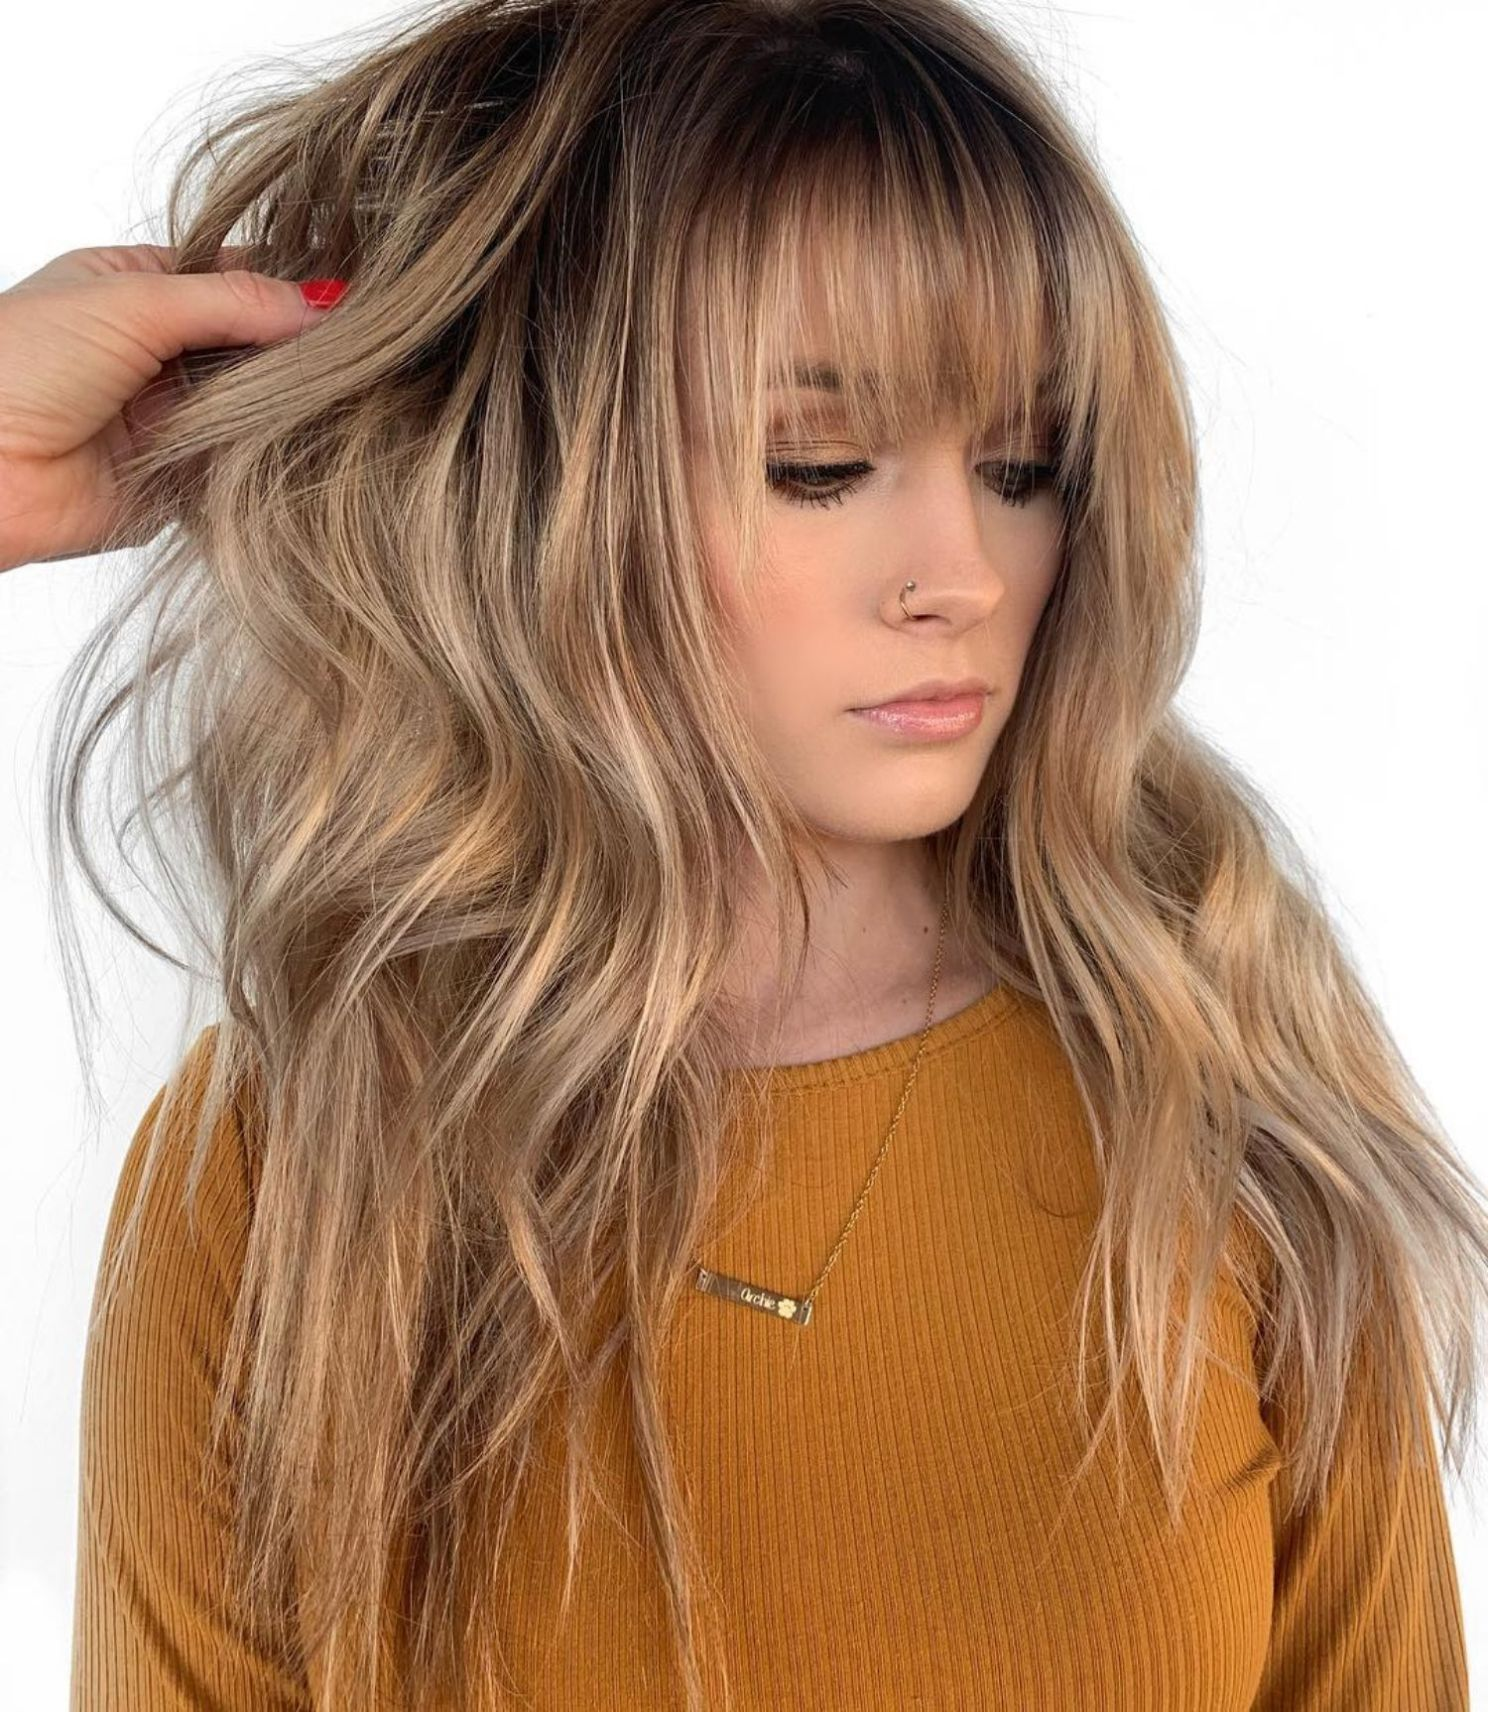 45+ Long hair with short layers and bangs ideas